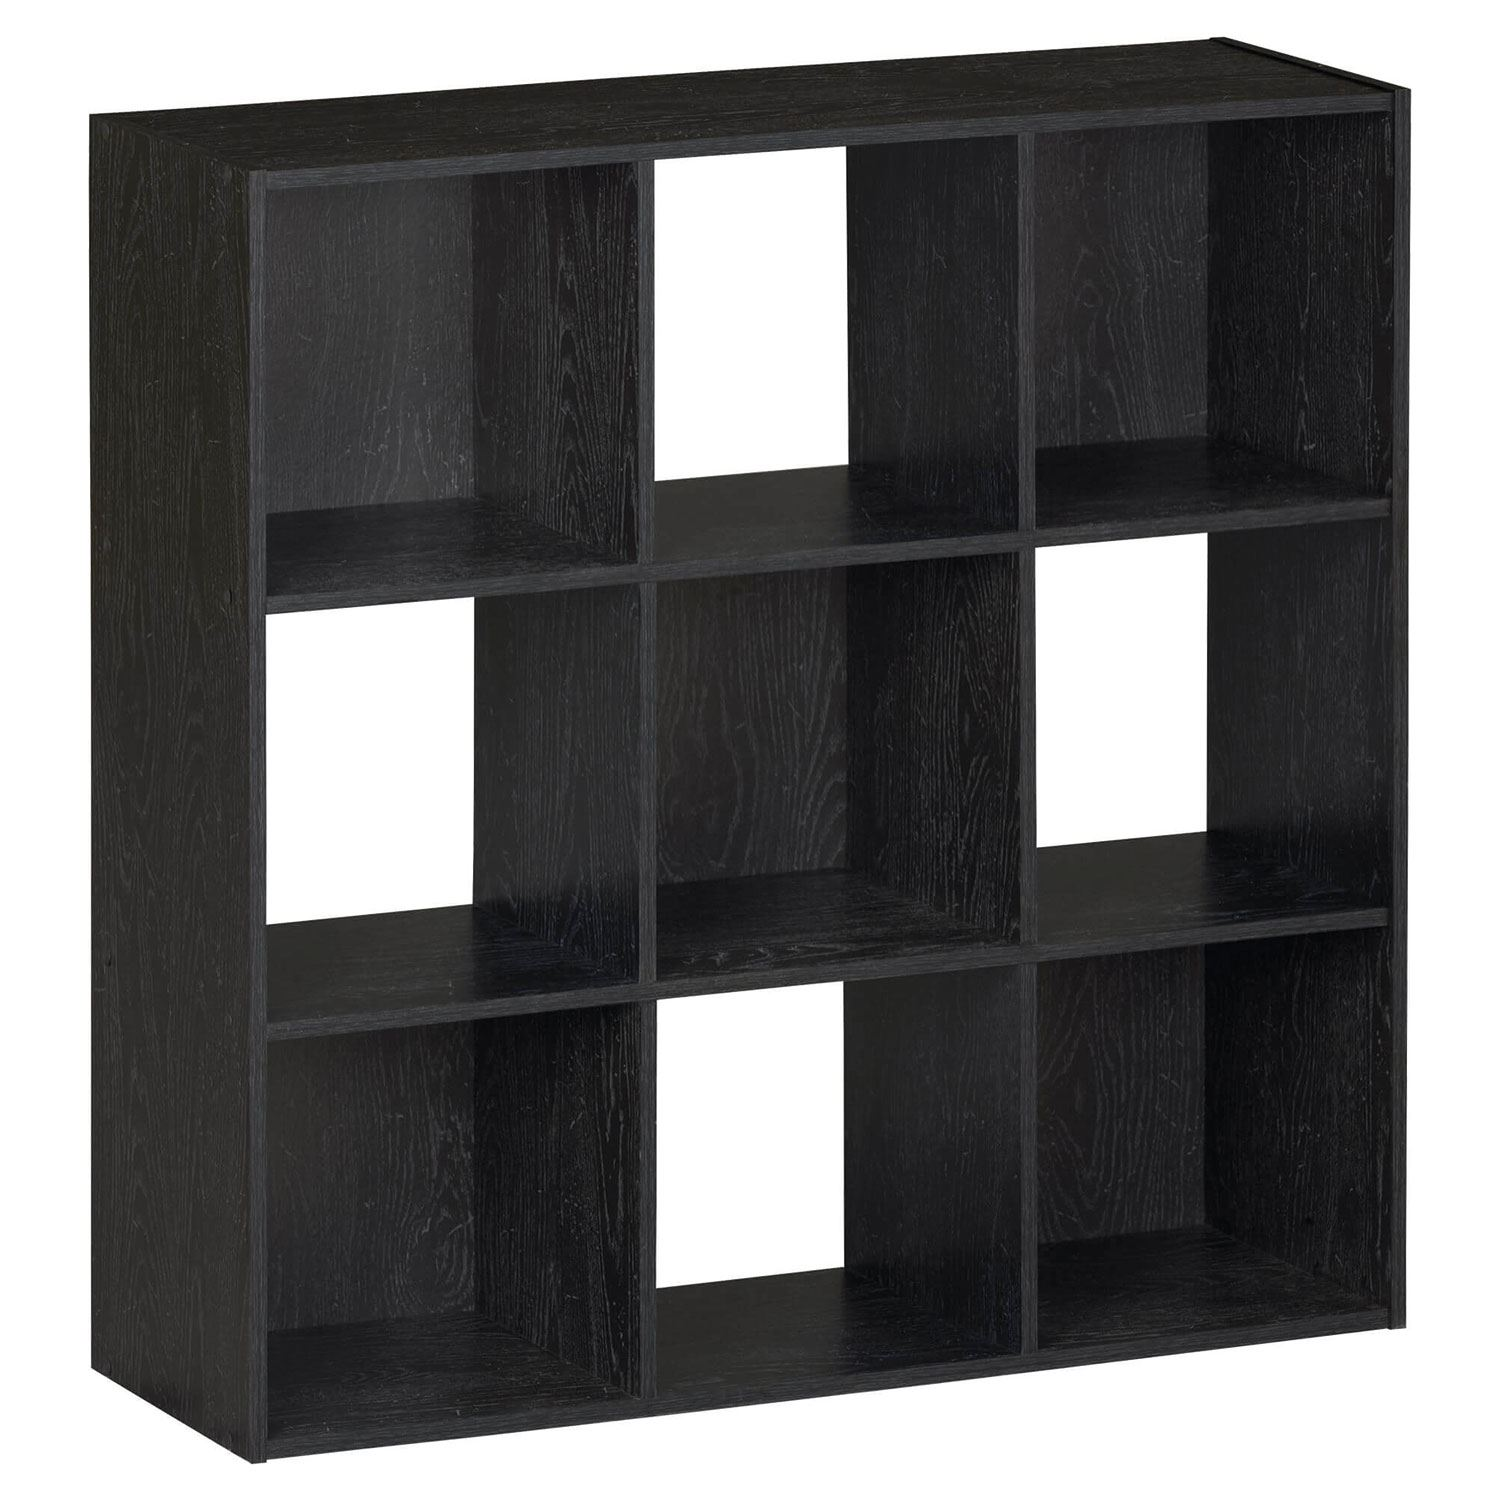 wooden storage unit 9 cube 3 tier strong bookcase shelving. Black Bedroom Furniture Sets. Home Design Ideas